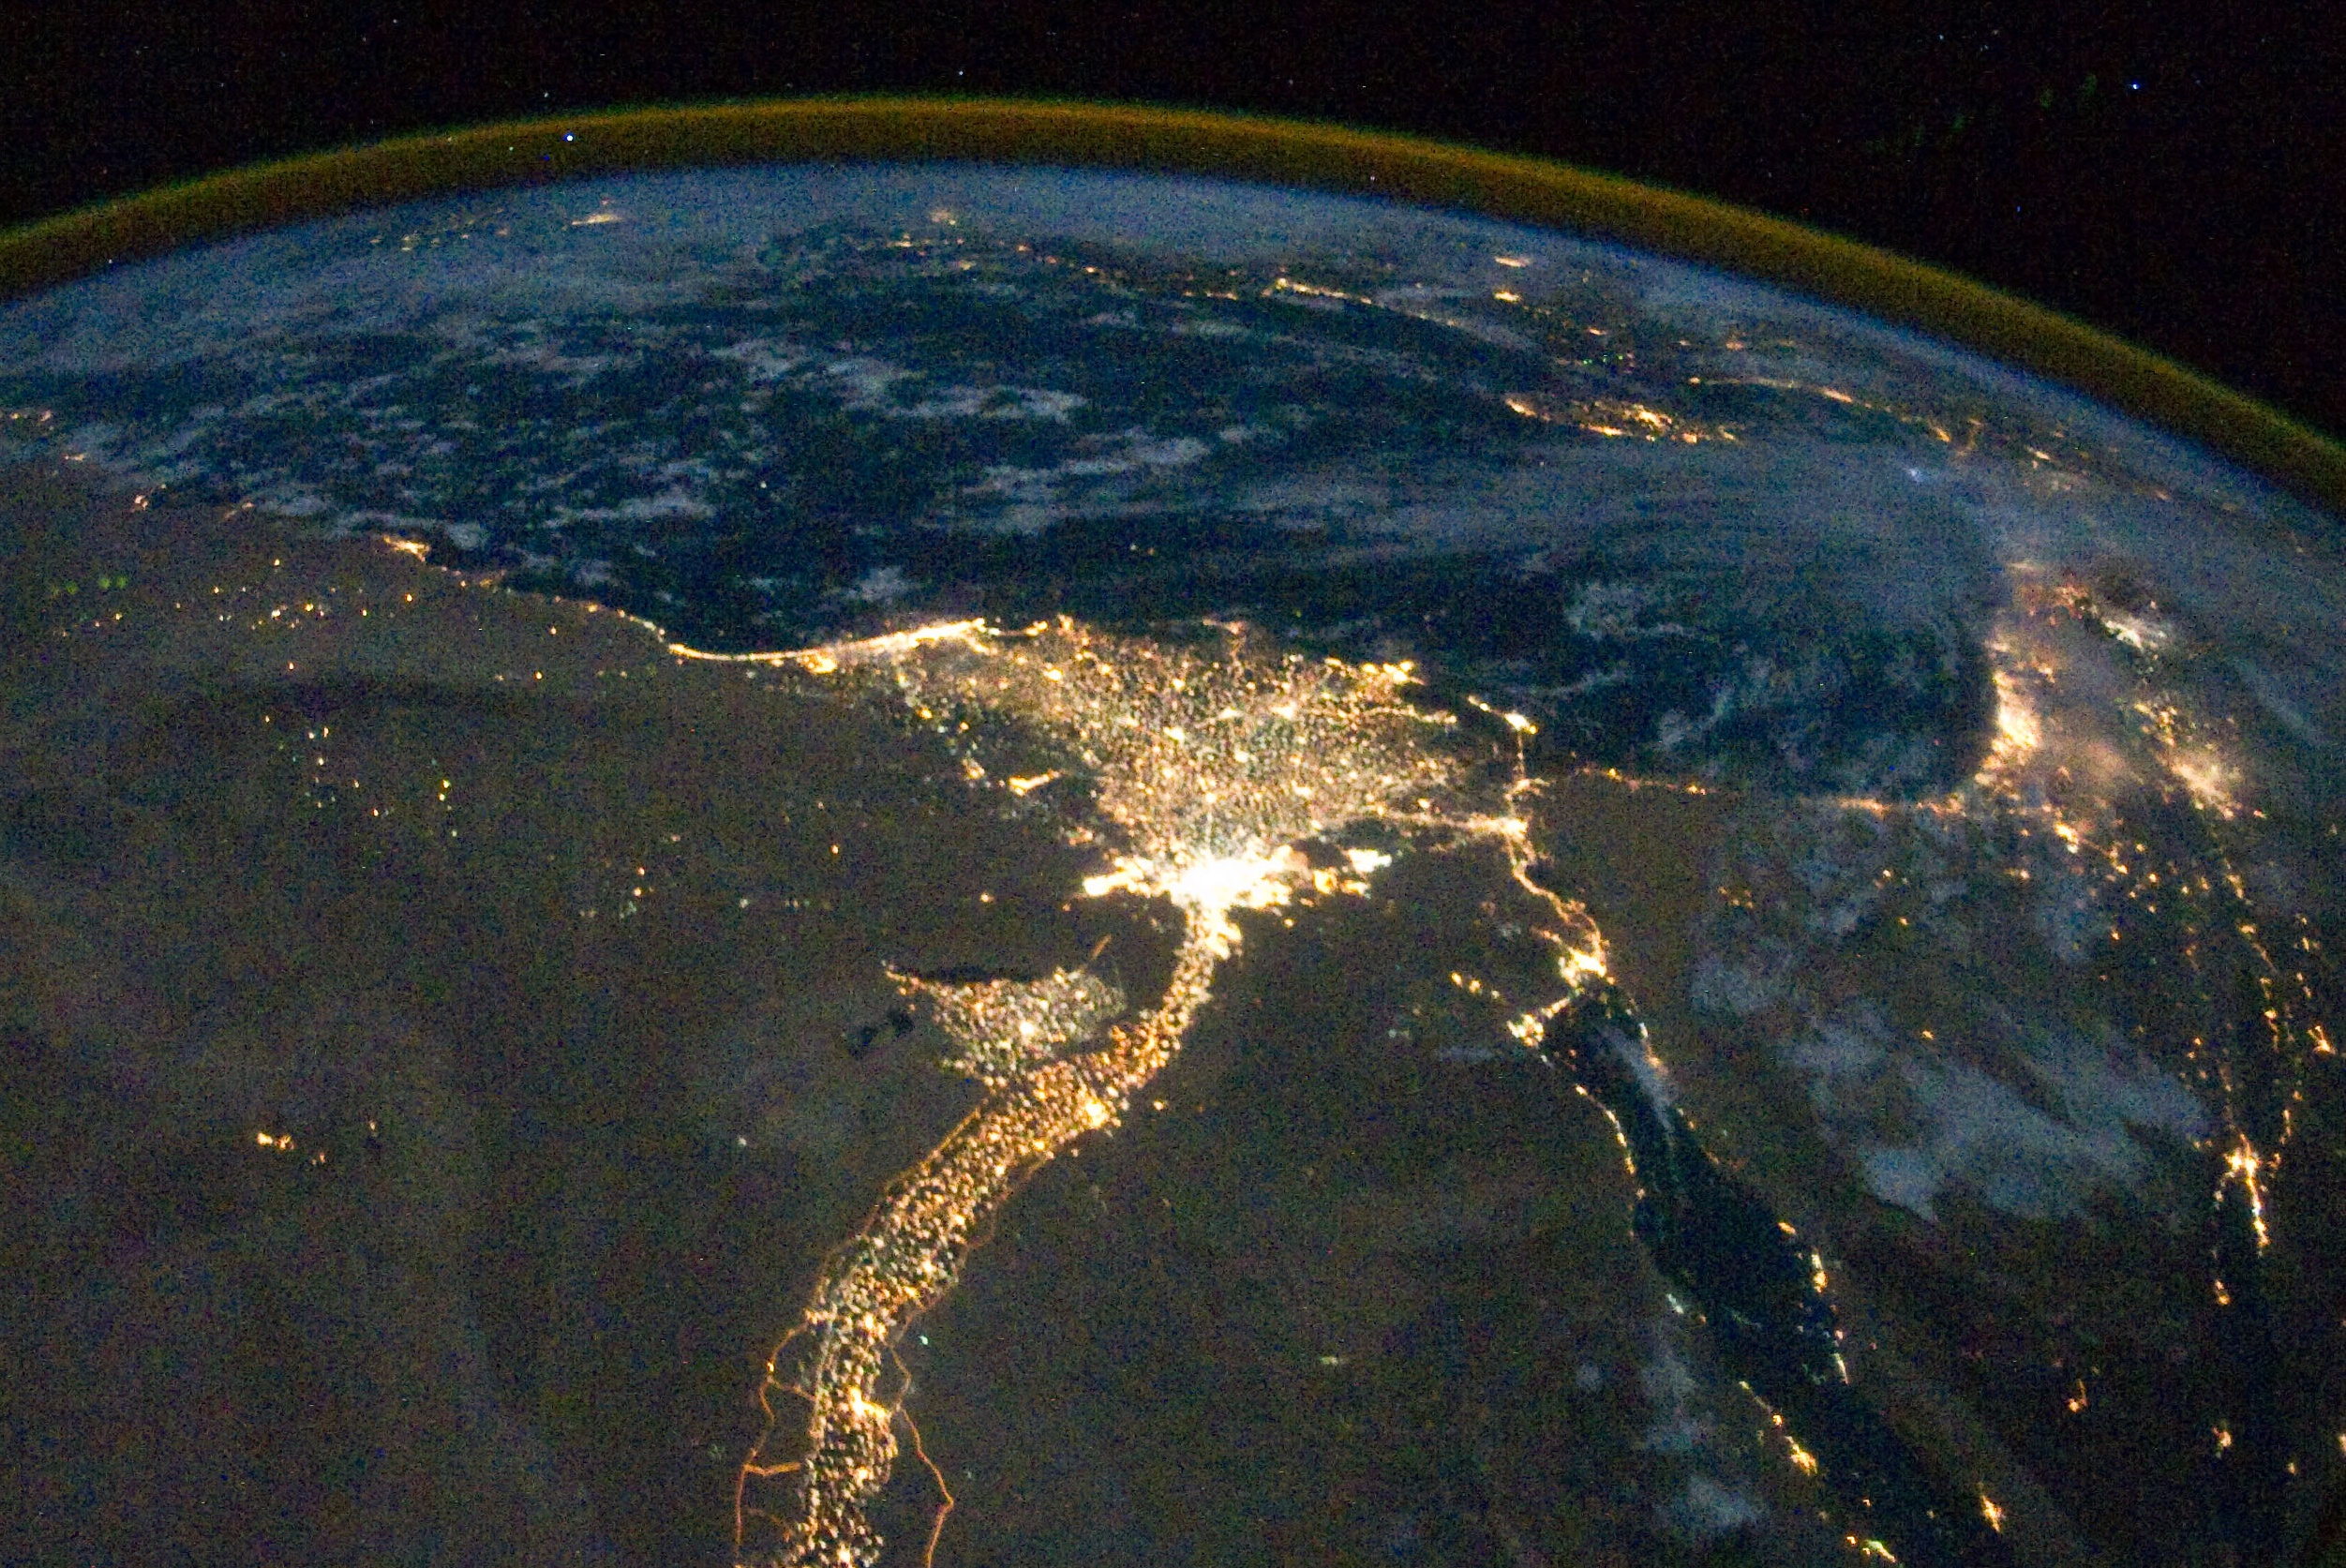 Nile_River_Delta_at_Night_cropped